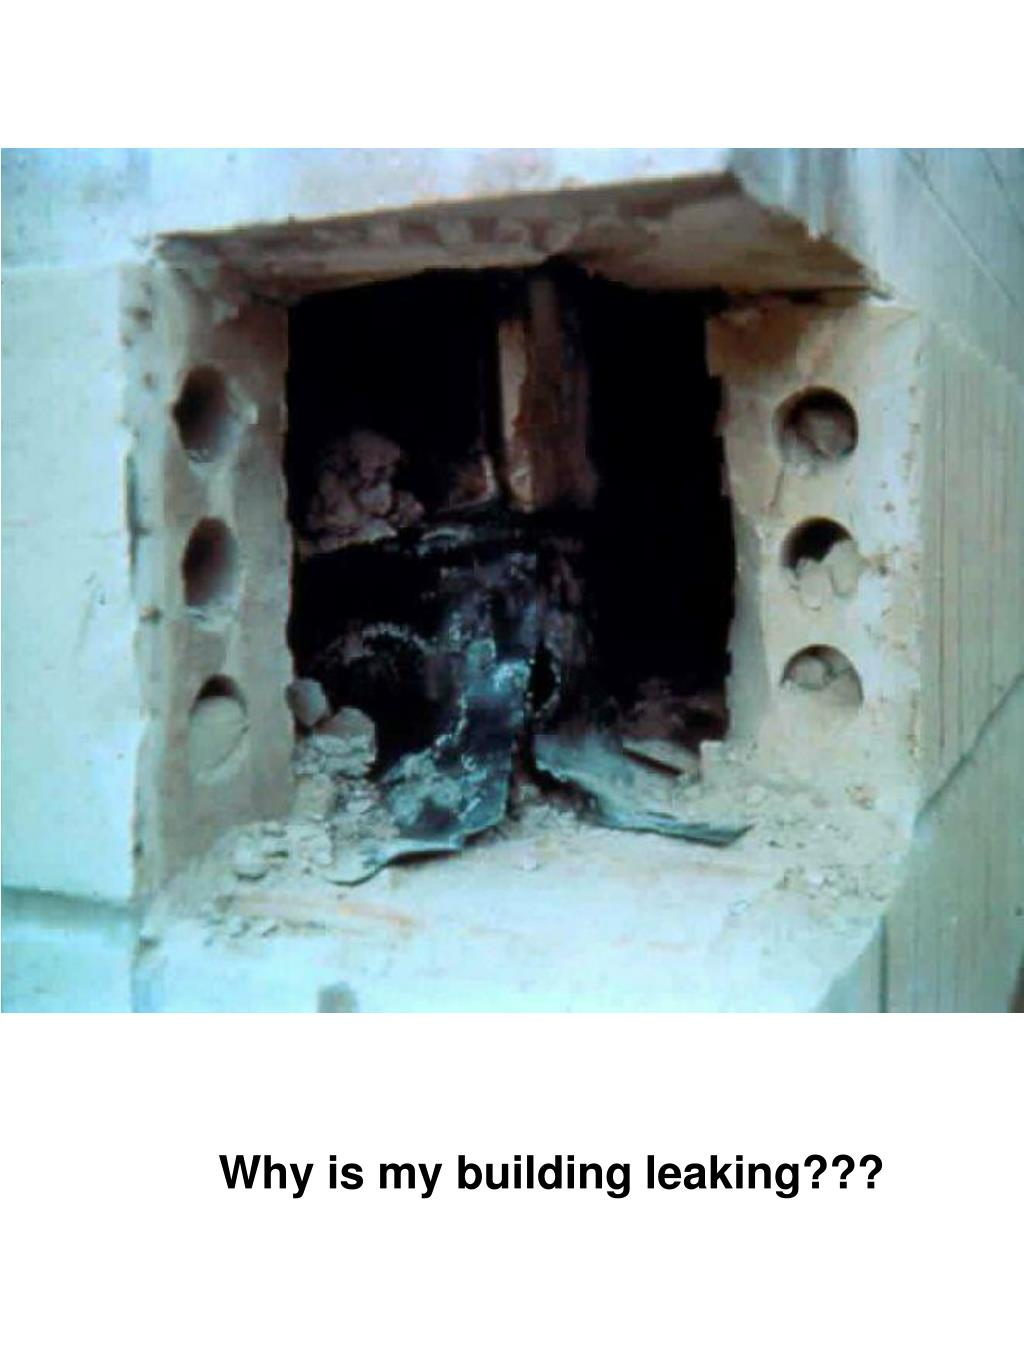 Why is my building leaking???